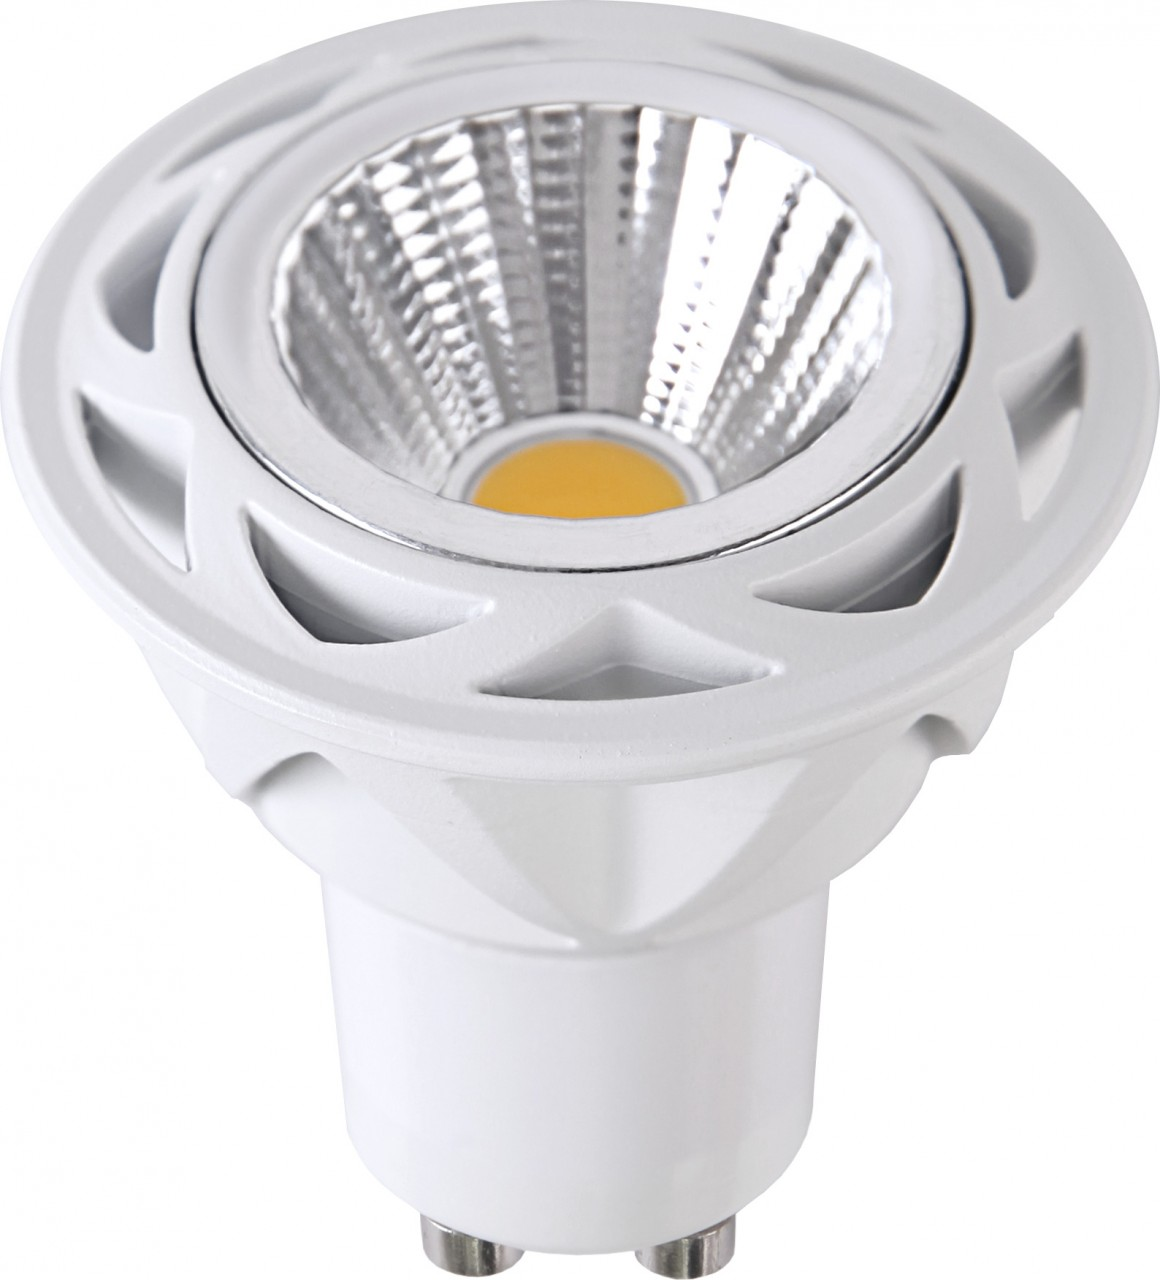 LED SPOT COB MR16 - 230V - GU10 - 26- - 5-5W - warmweiss 2700K - 350lm